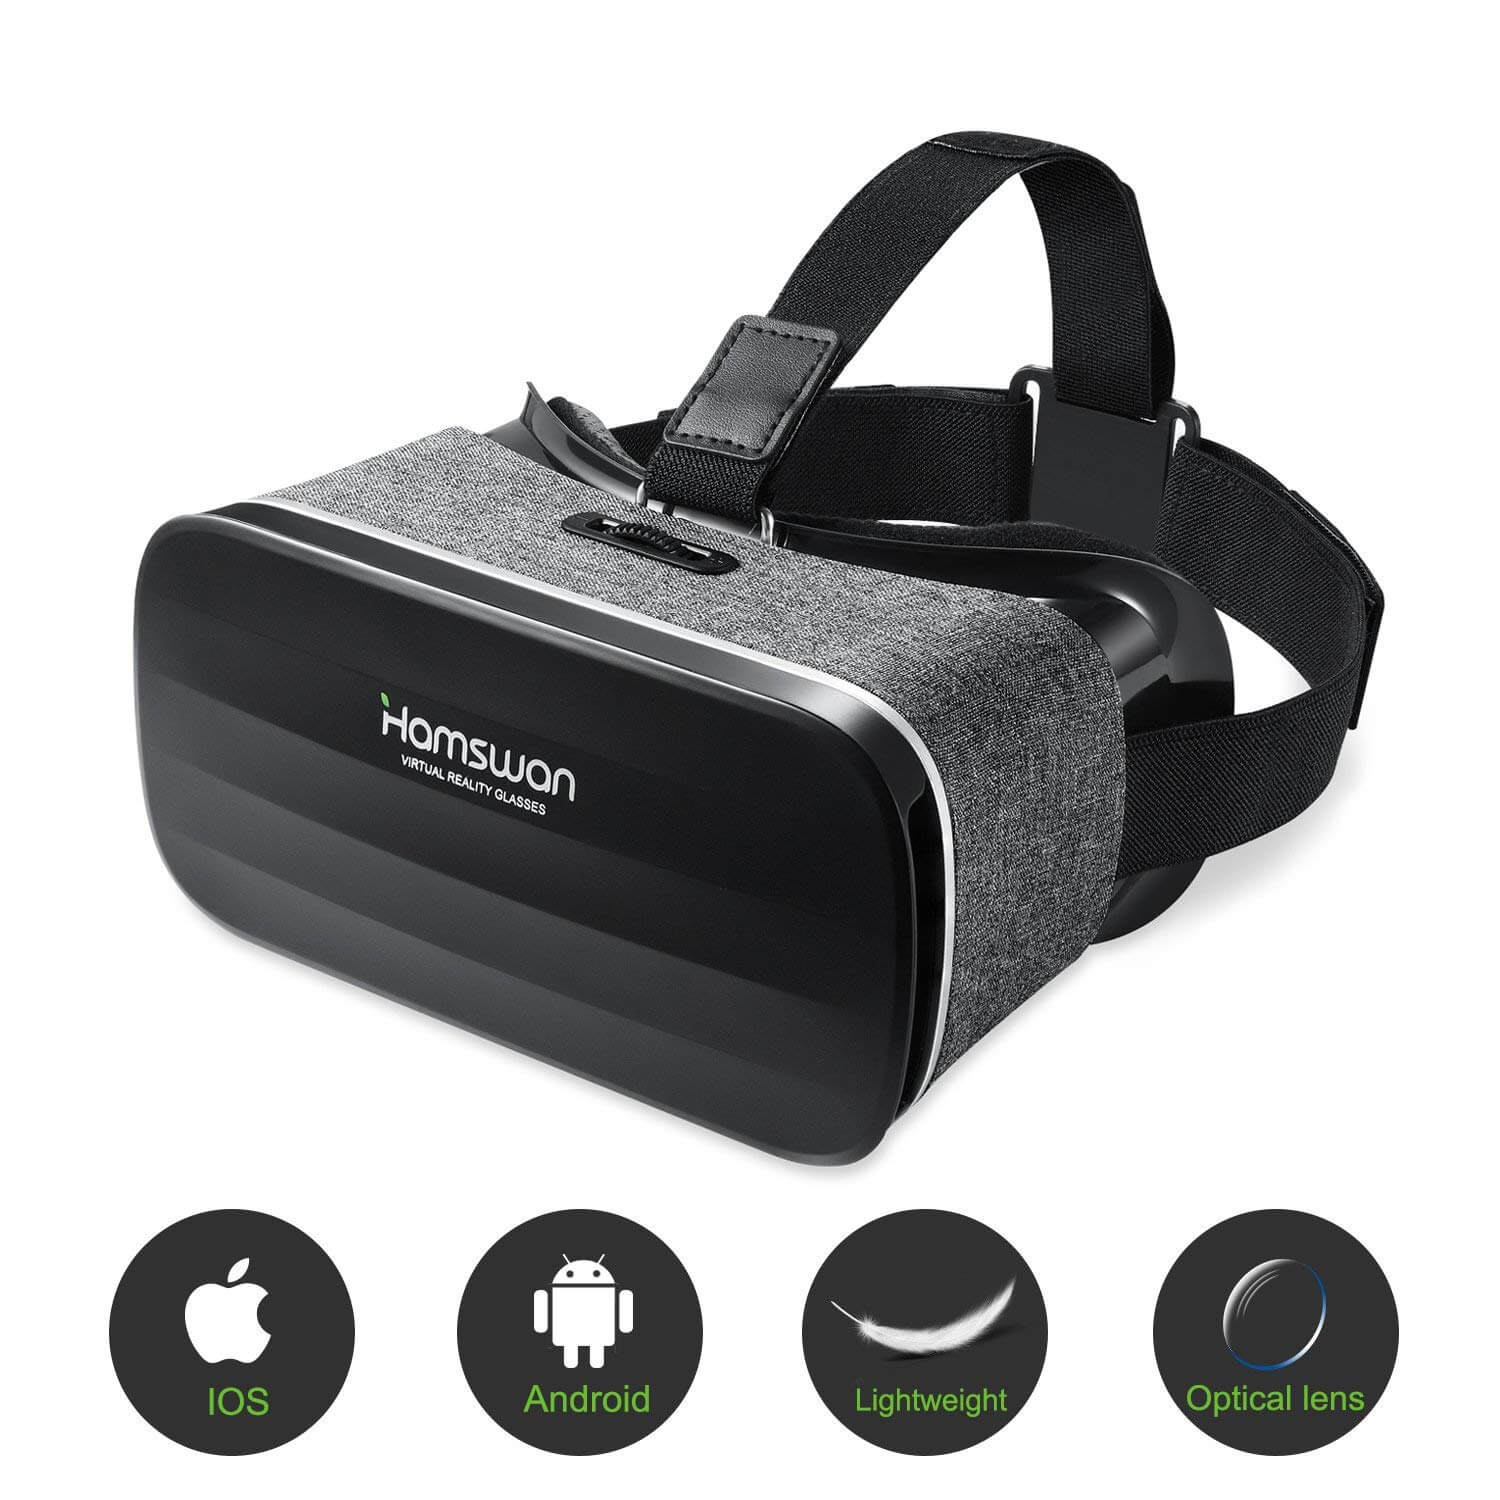 HAMSWAN Virtual Reality Headset Full Review With Pros And Cons